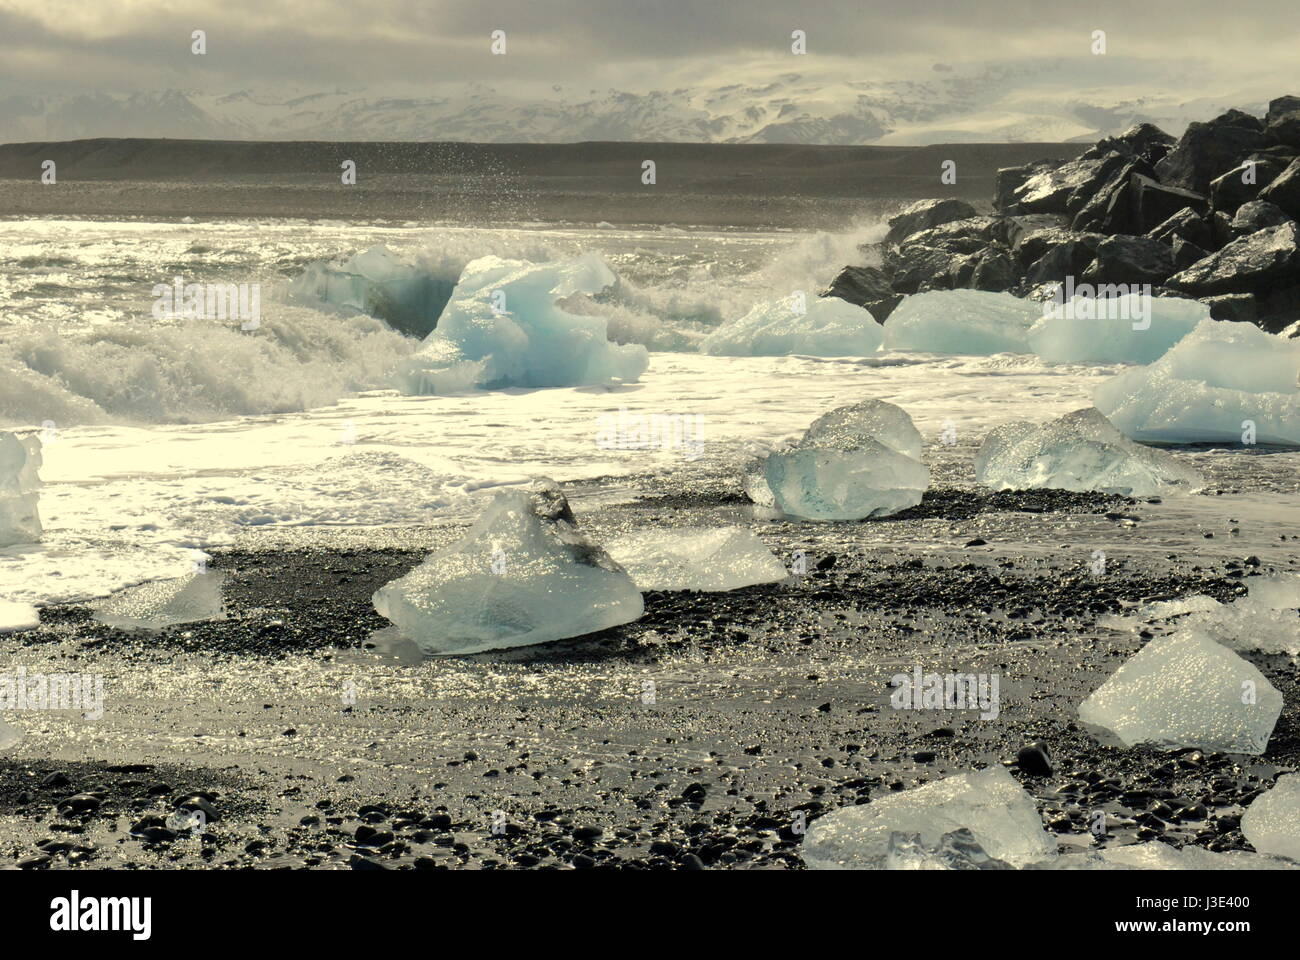 Ice and Icebergs at Jökulsárlón lake, Iceland. Following the ringroad no. 1 around the island. - Stock Image